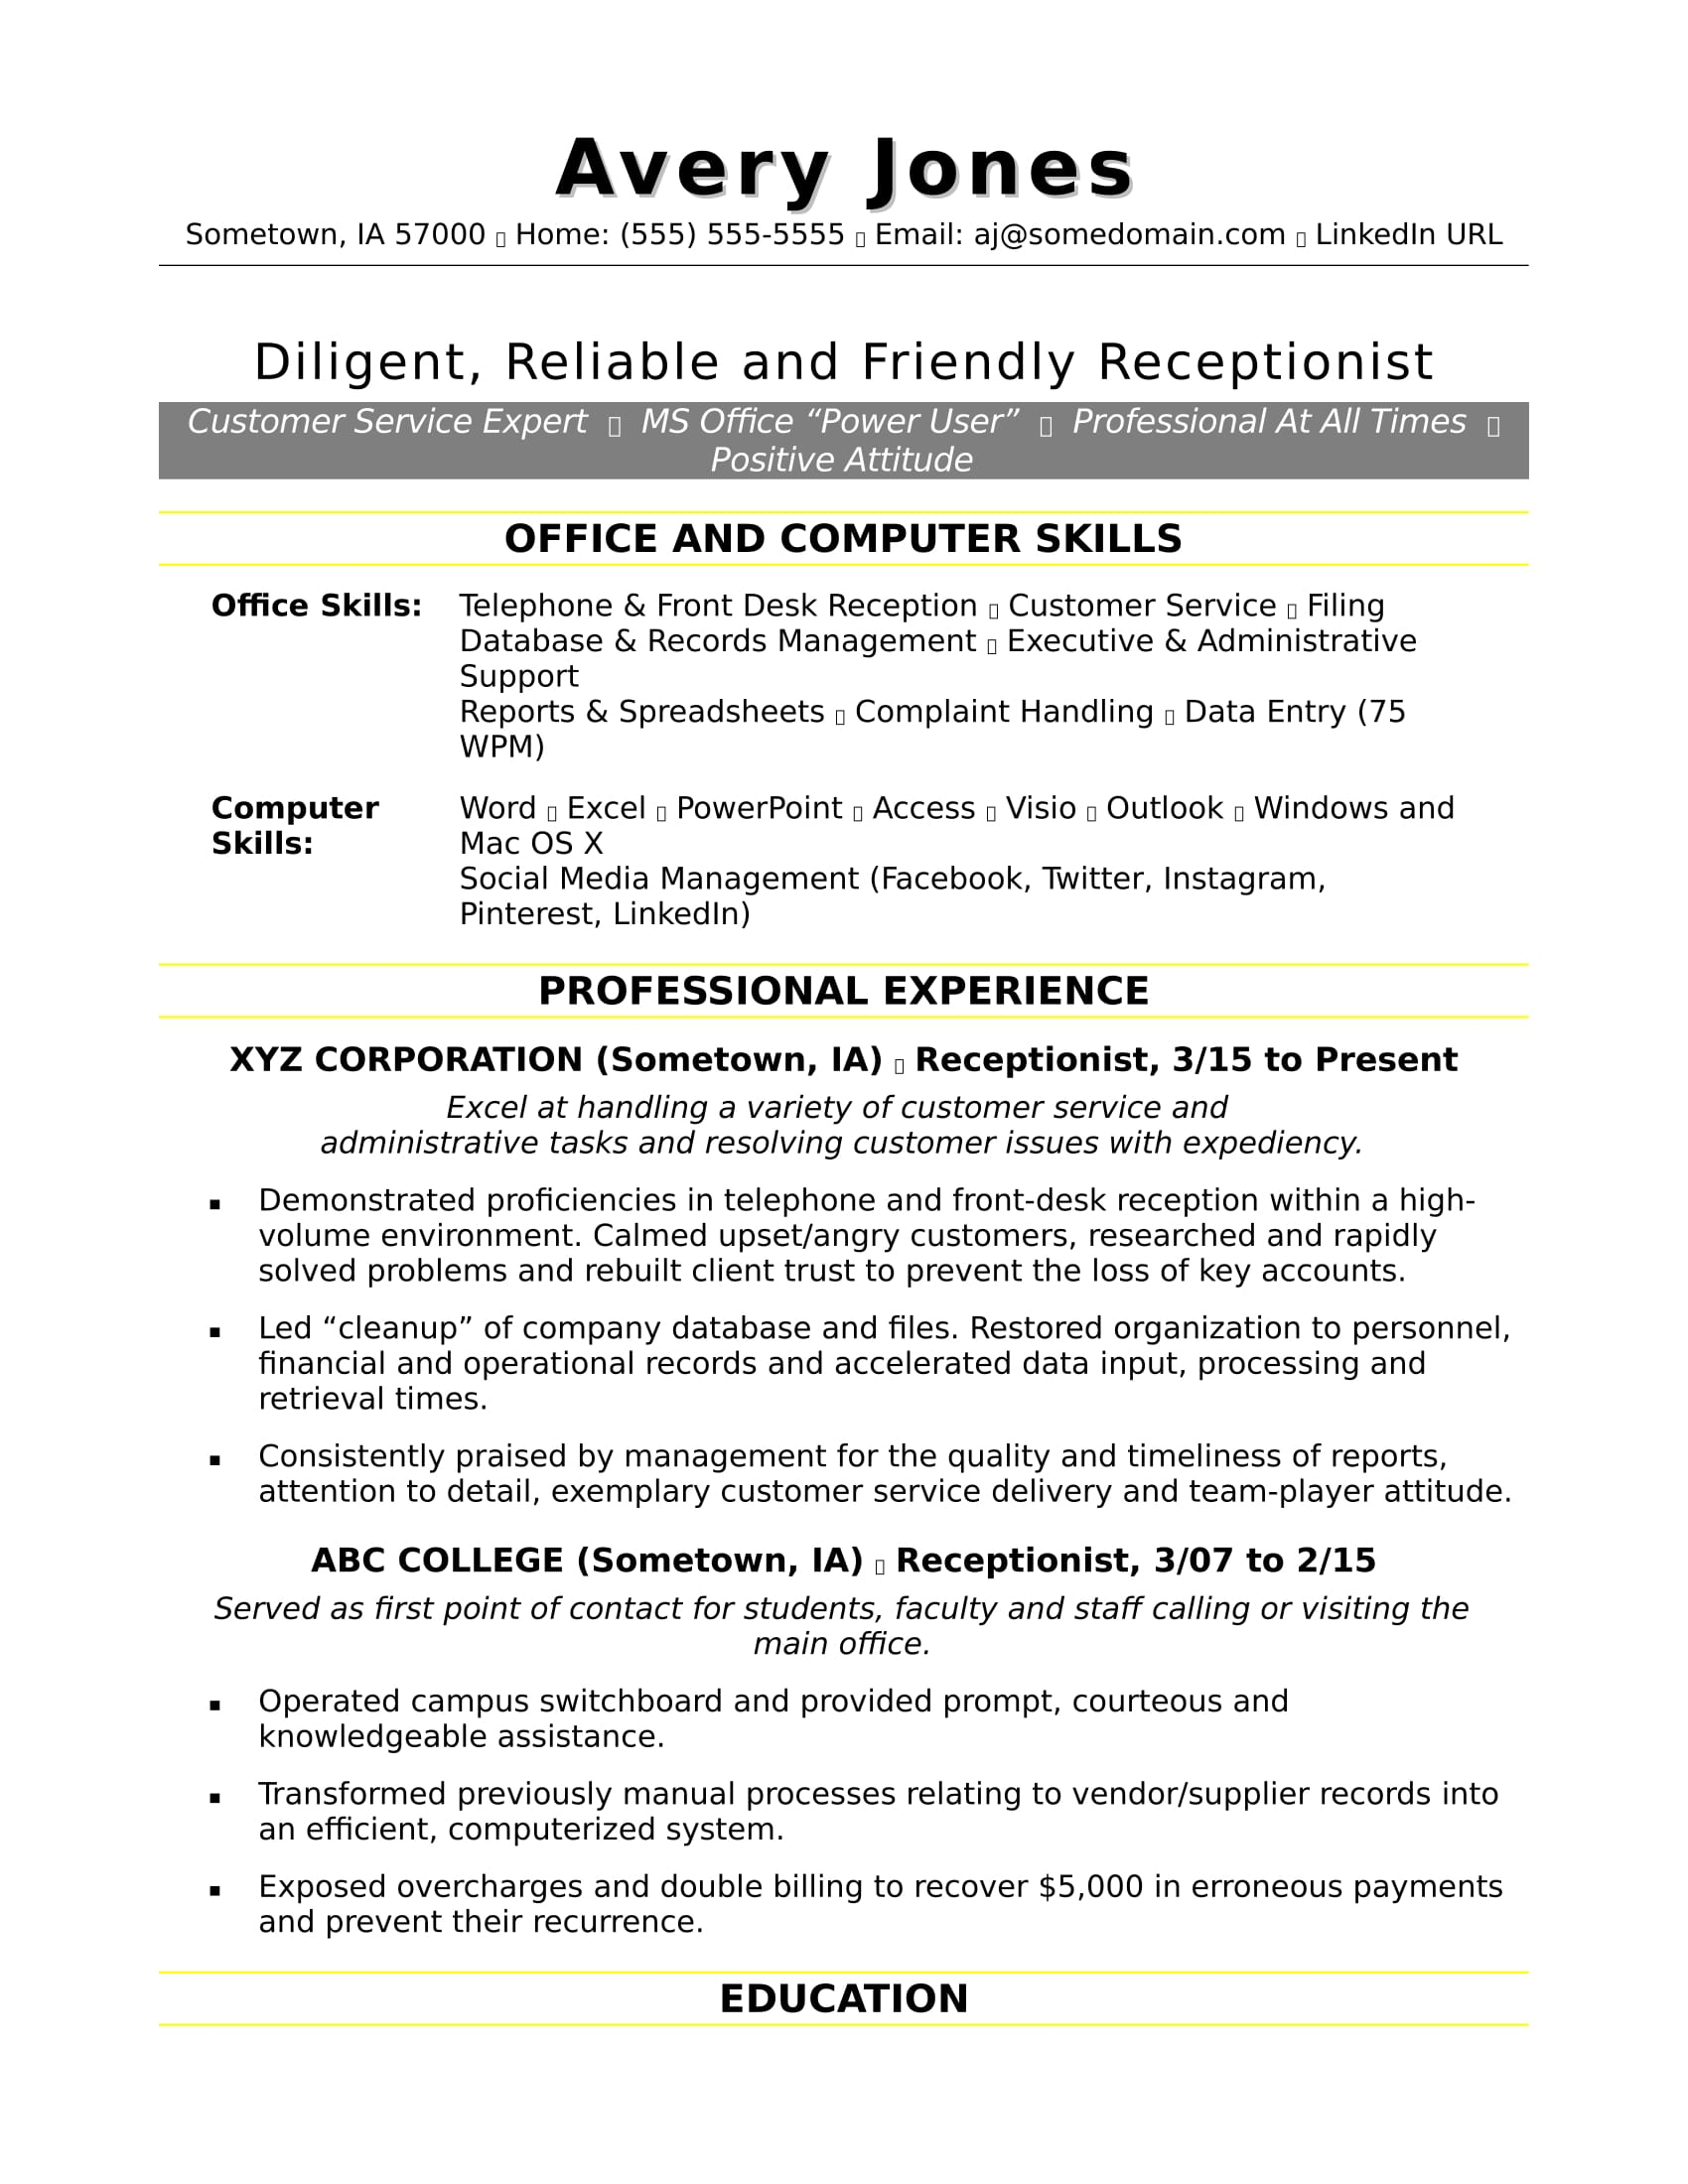 skills to mention in resume